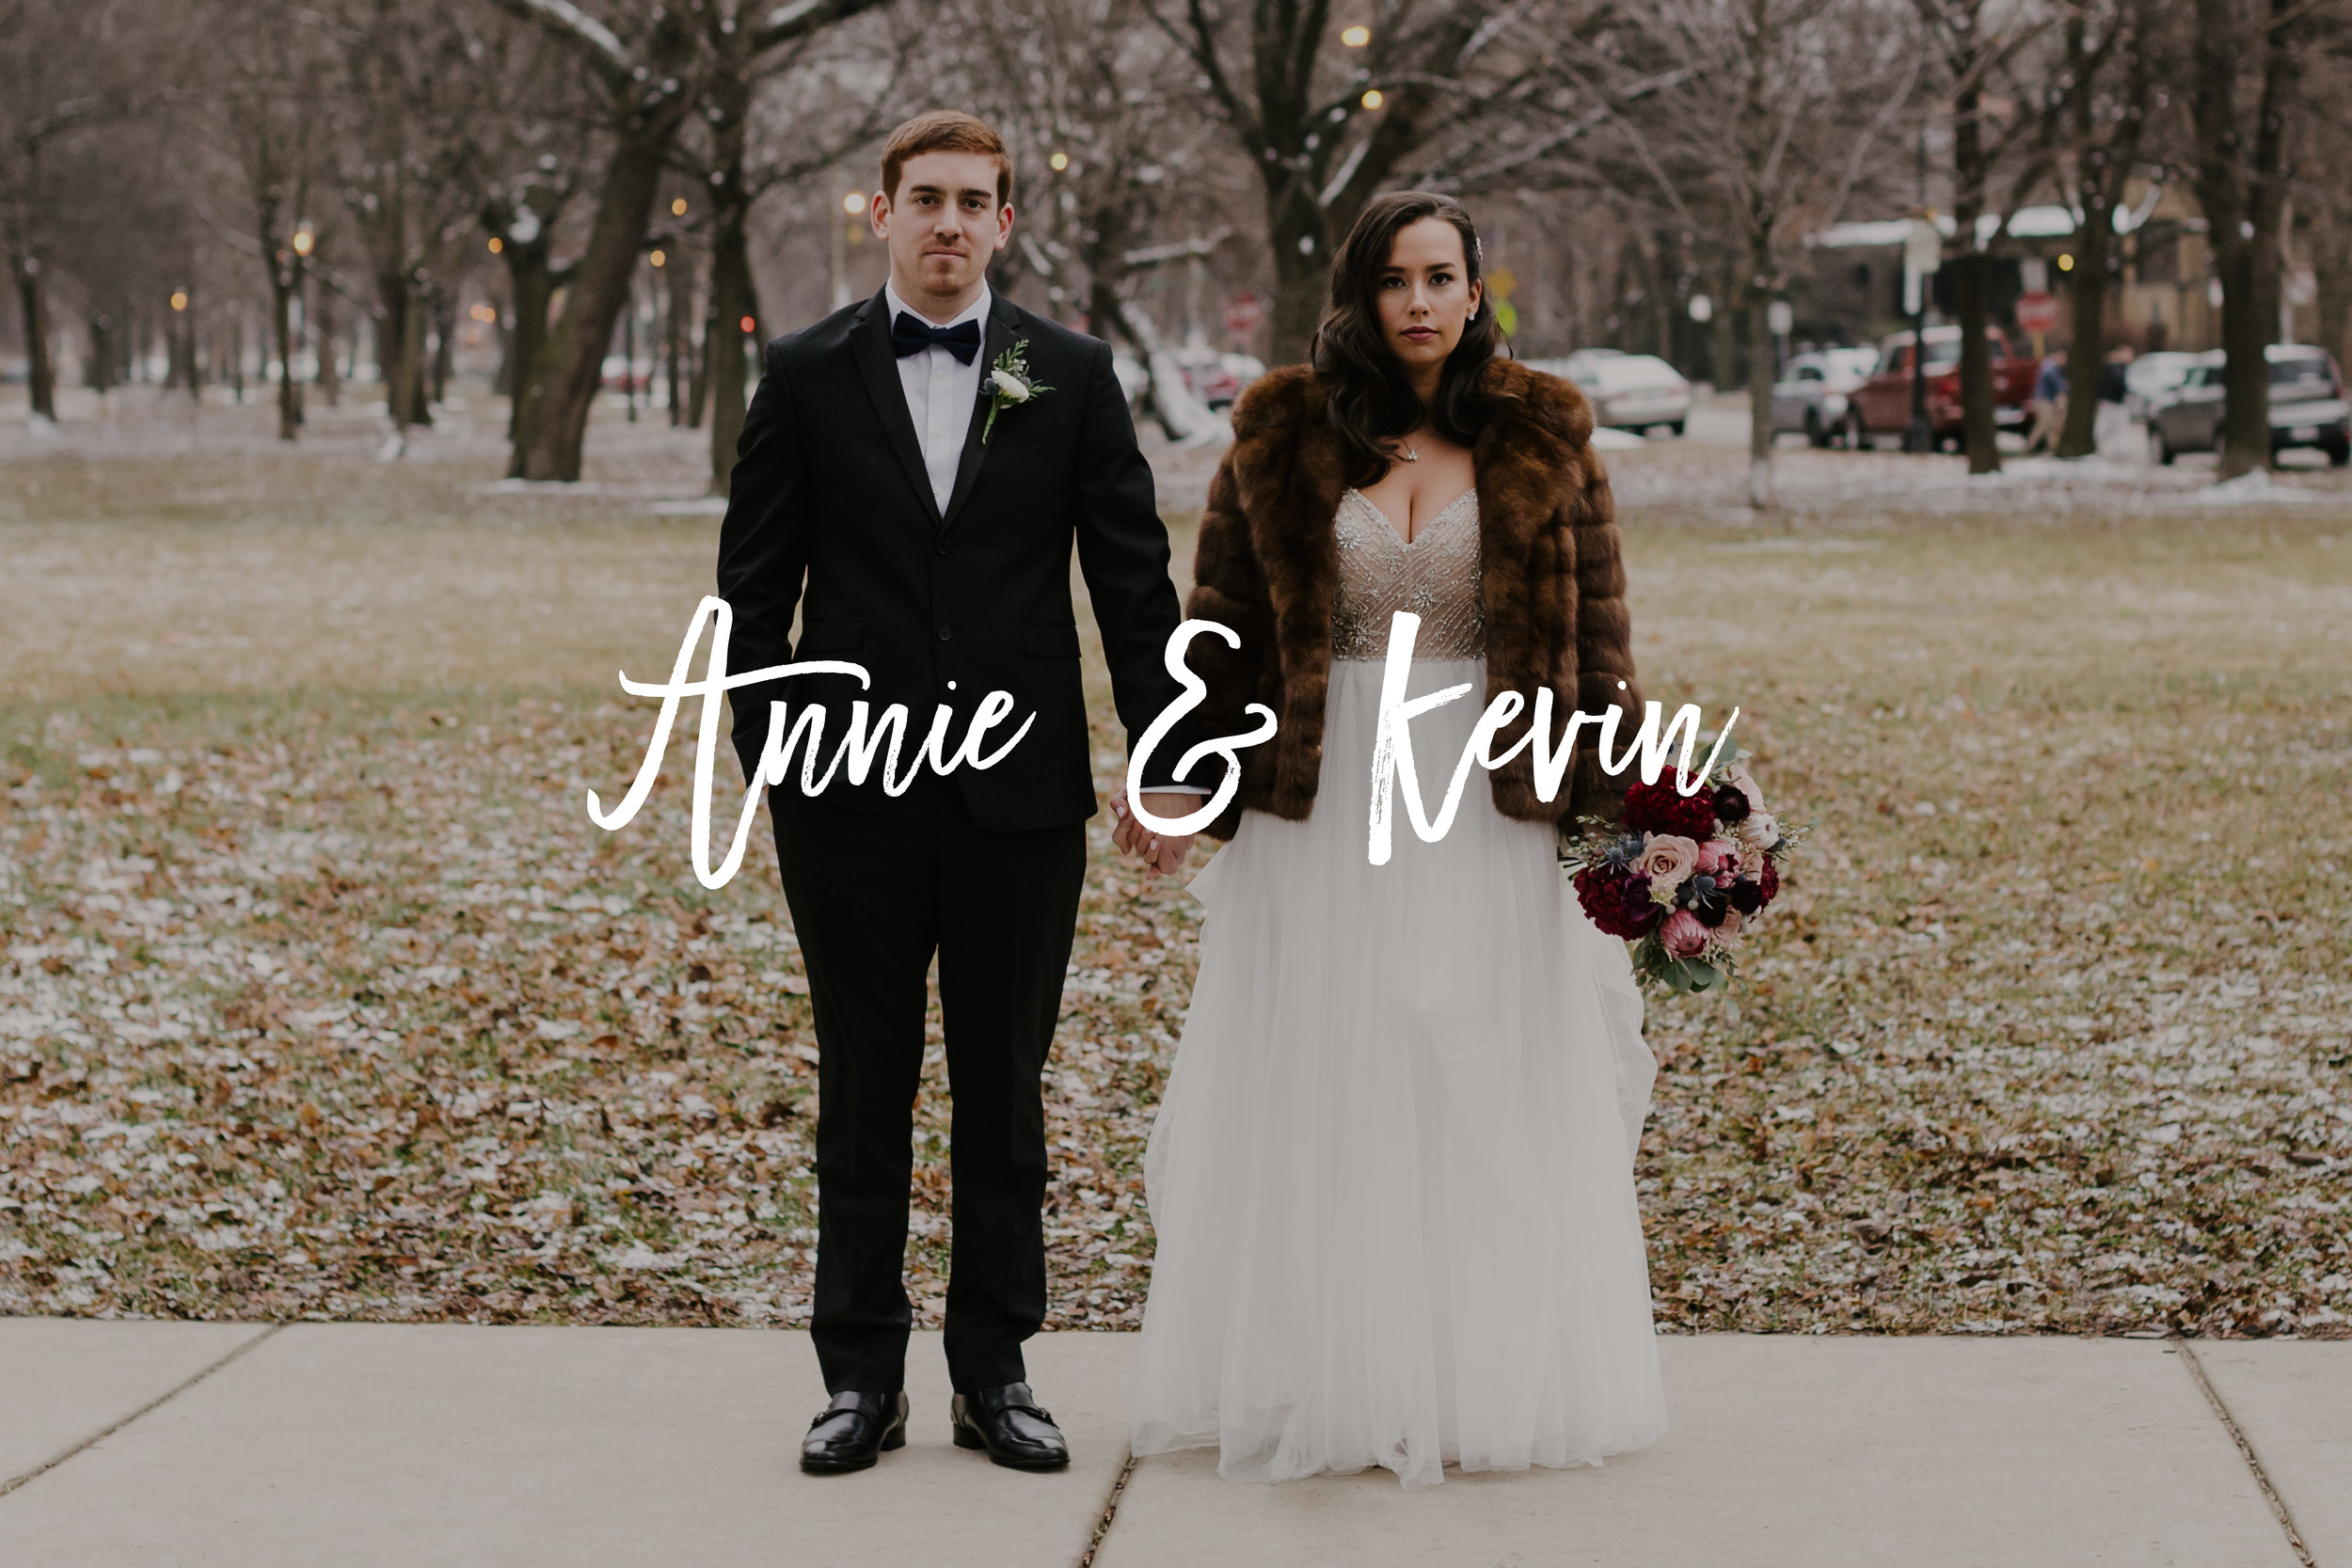 Annie and Kevin Wedding Photos Button.jpg